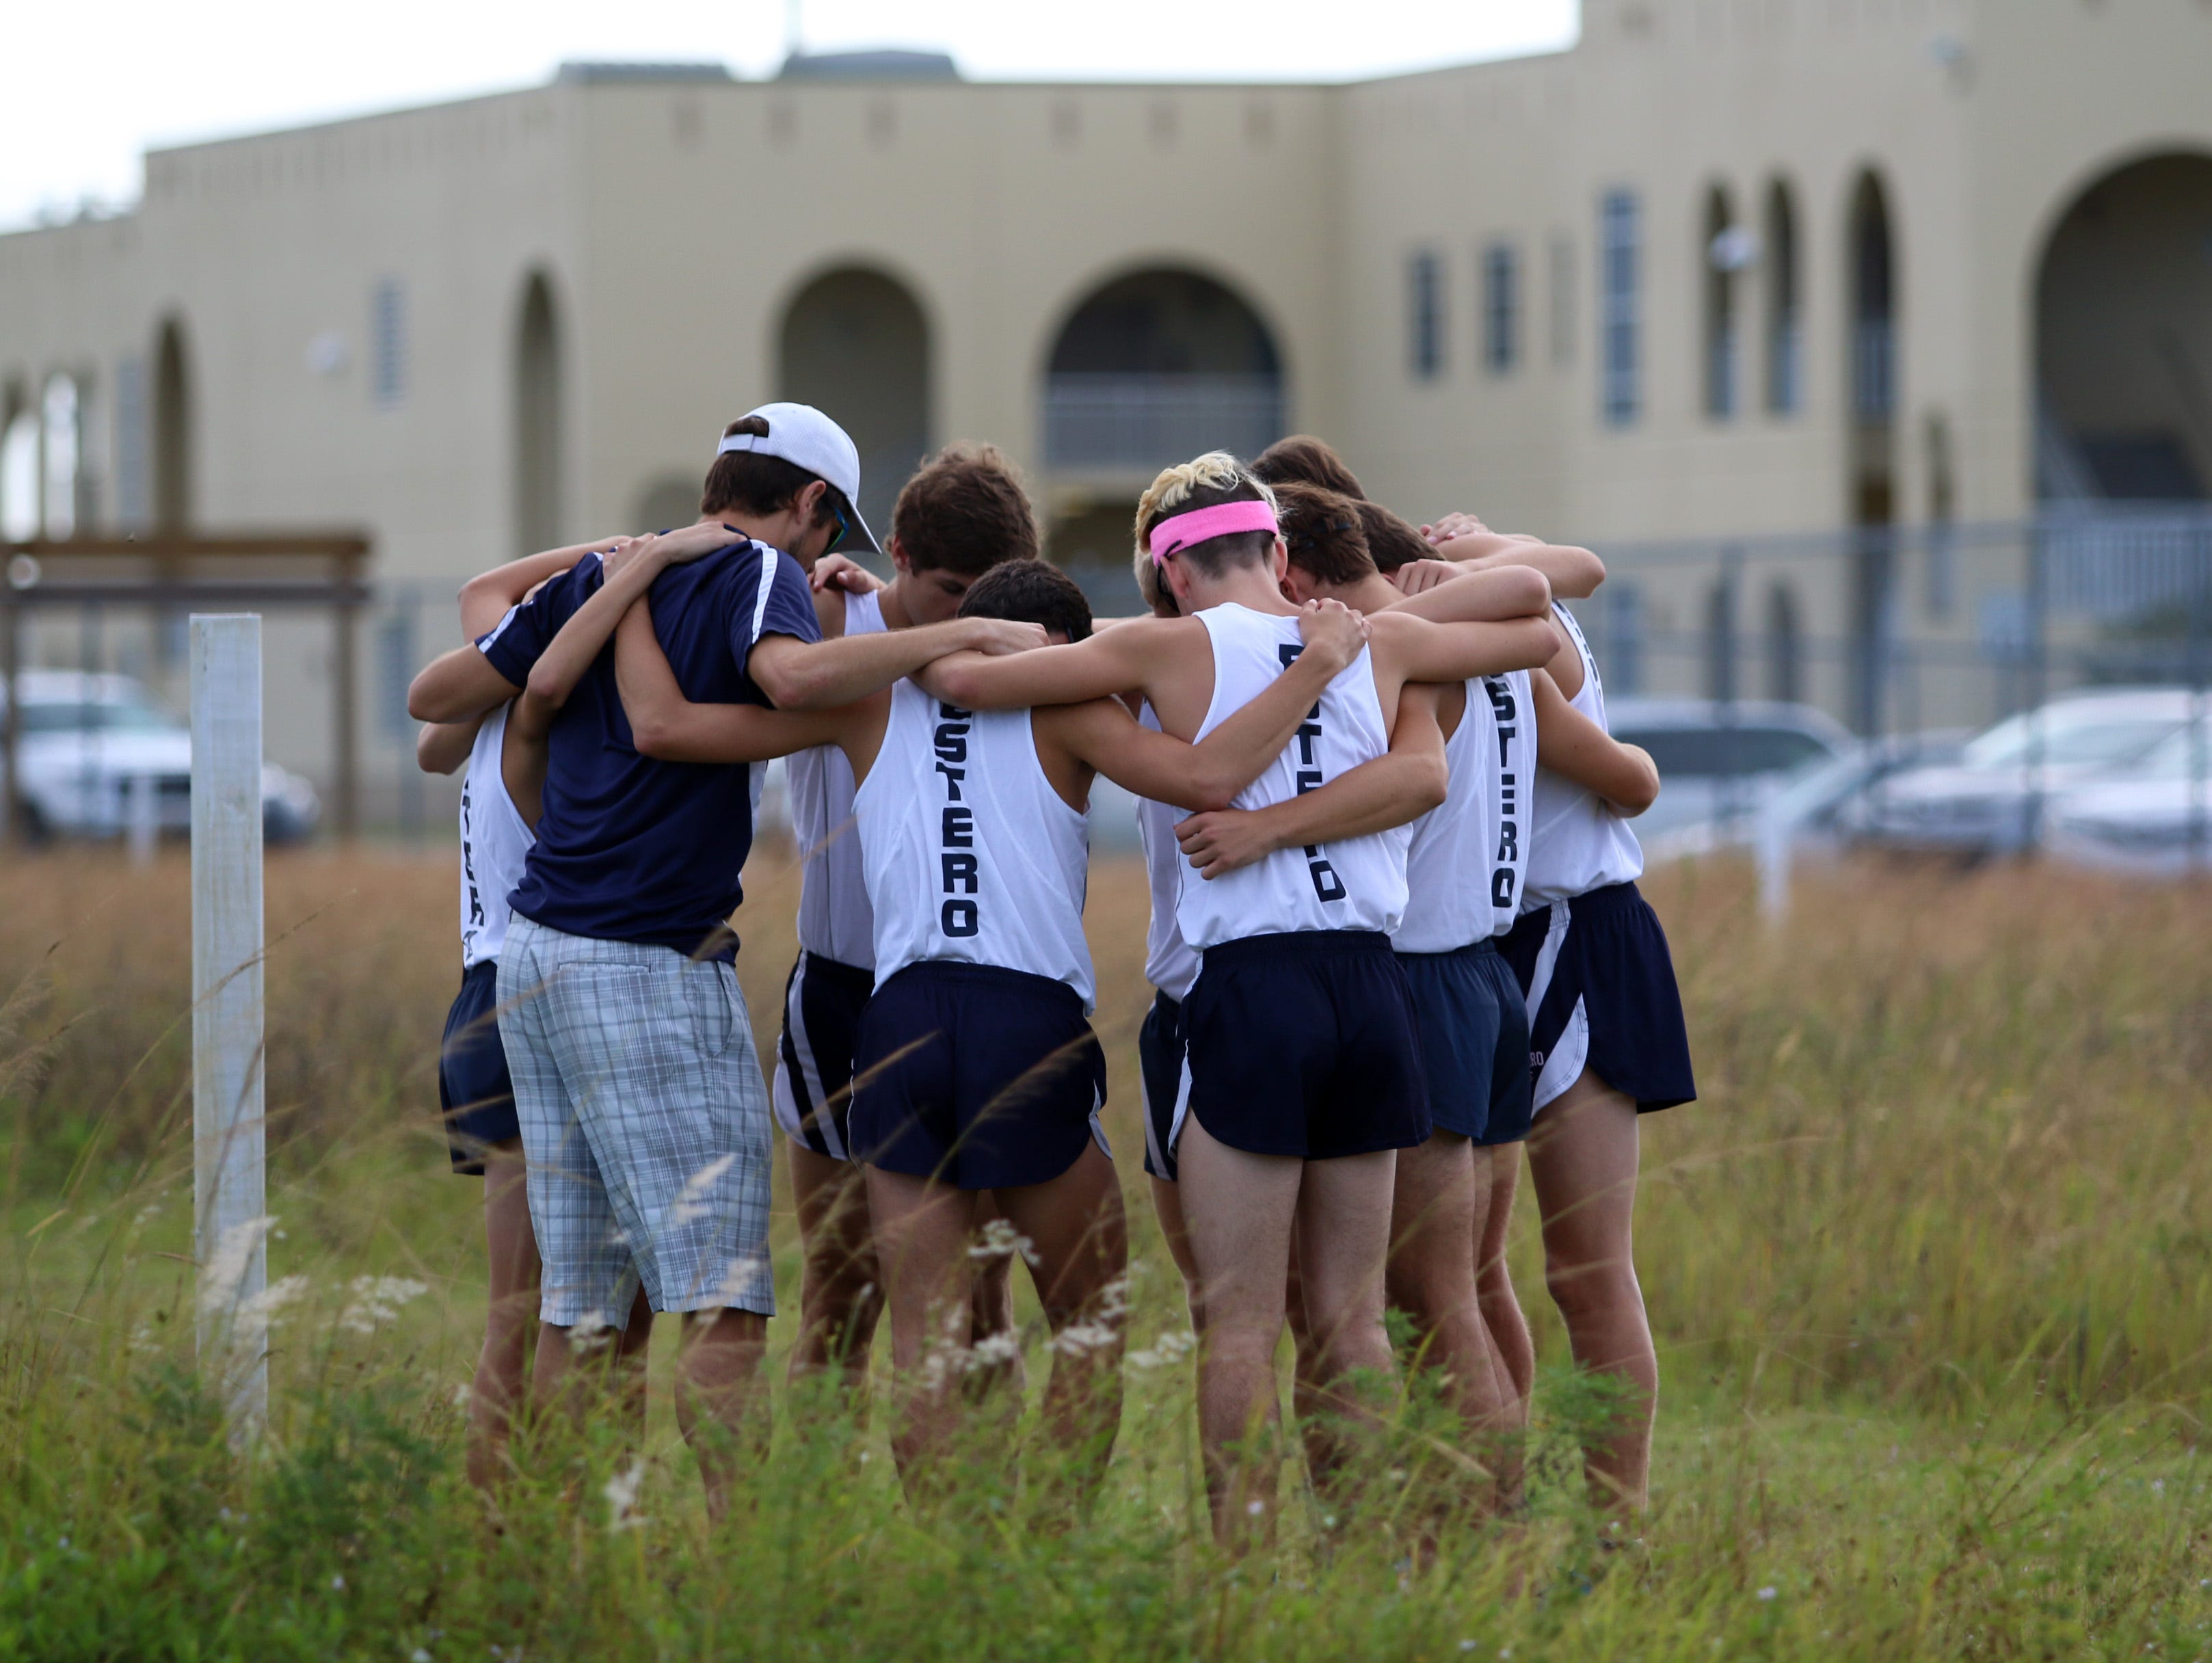 The Estero boys cross country team huddles before the race at Thursday morning's District 3A-12 meet at Palmetto Ridge High School in Naples,